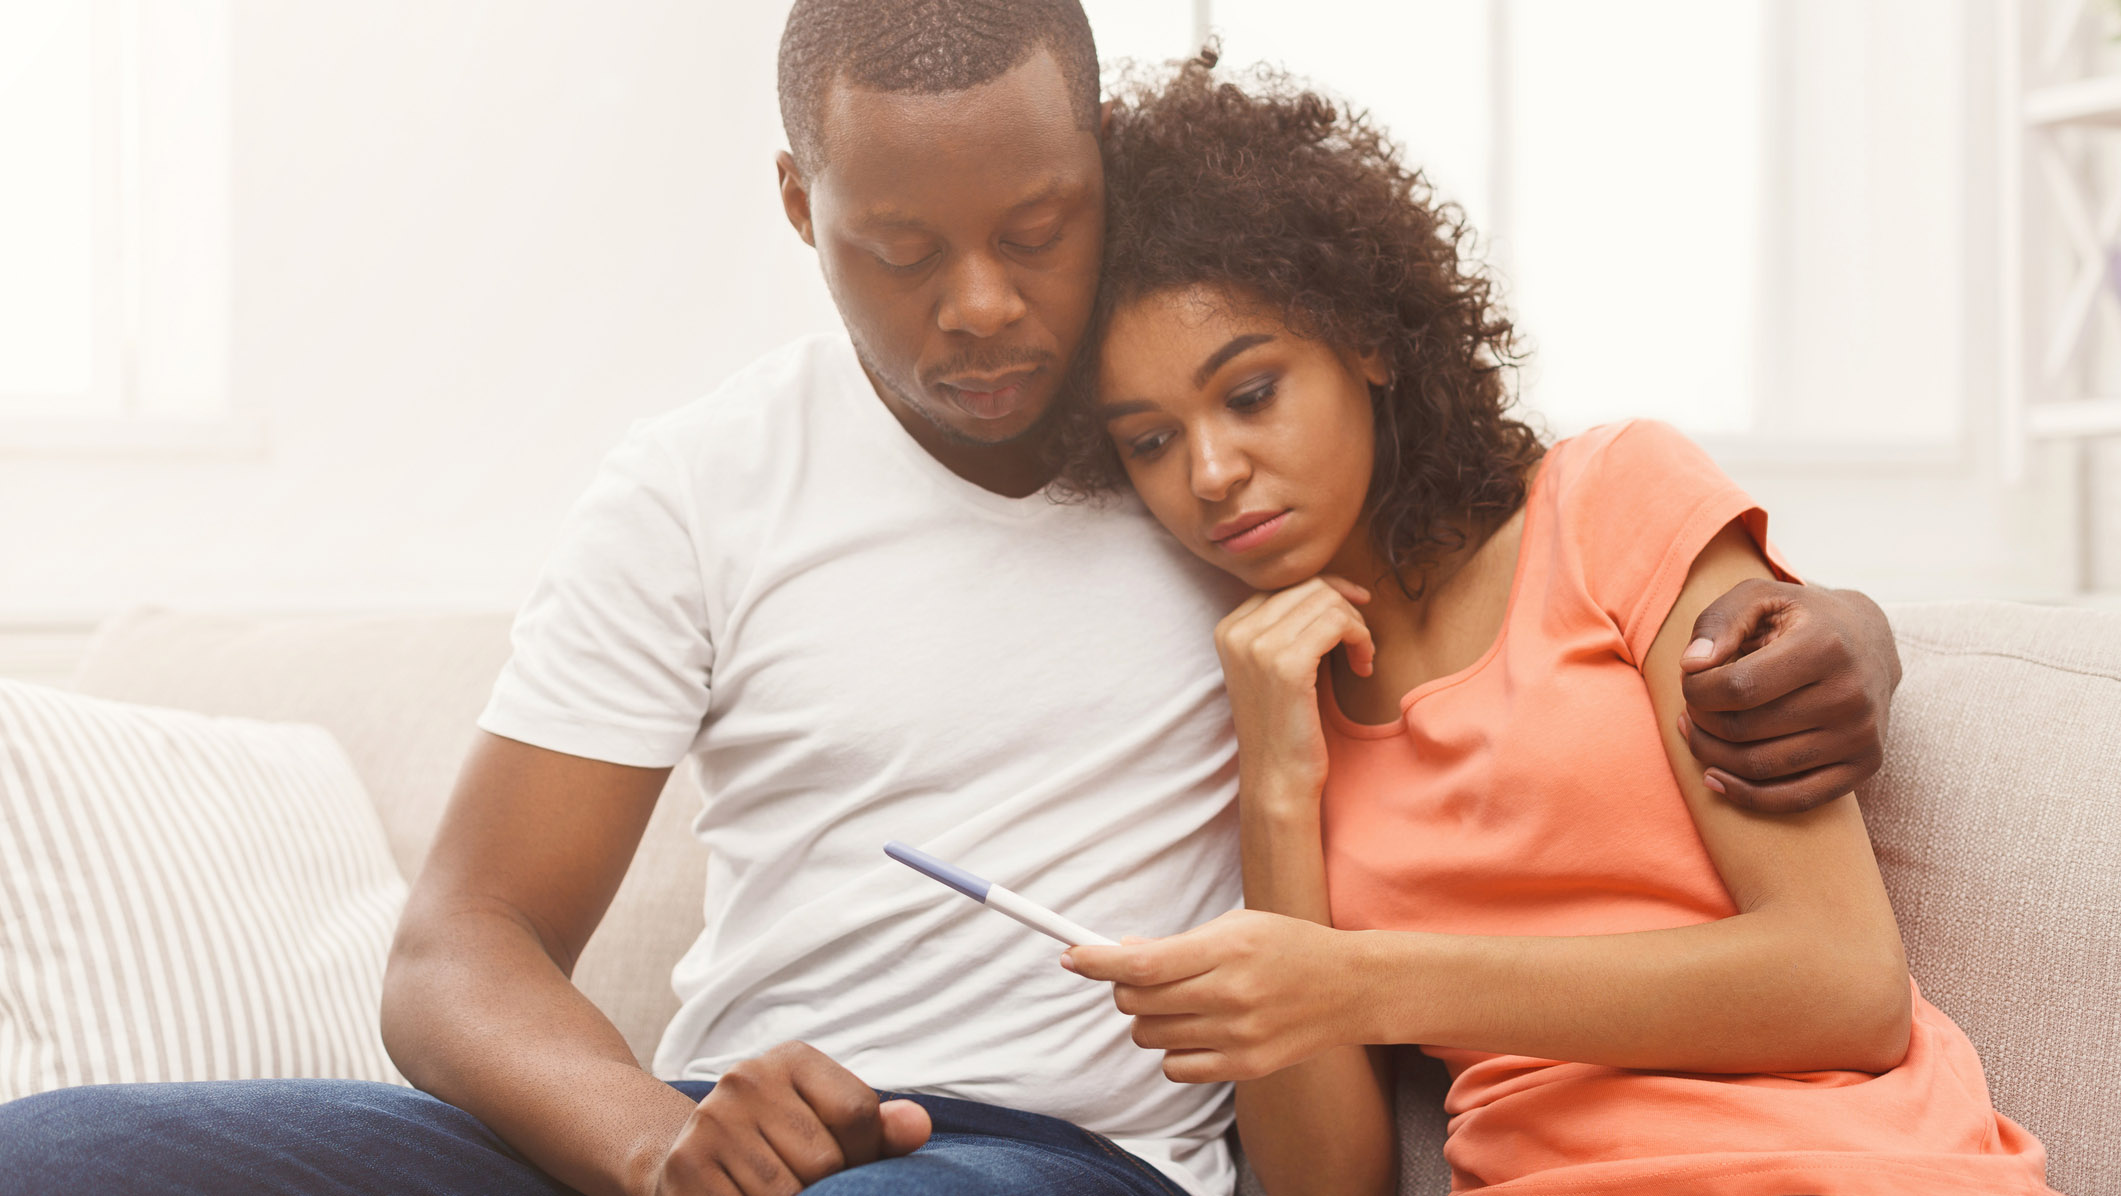 Couple distressed over infertility results